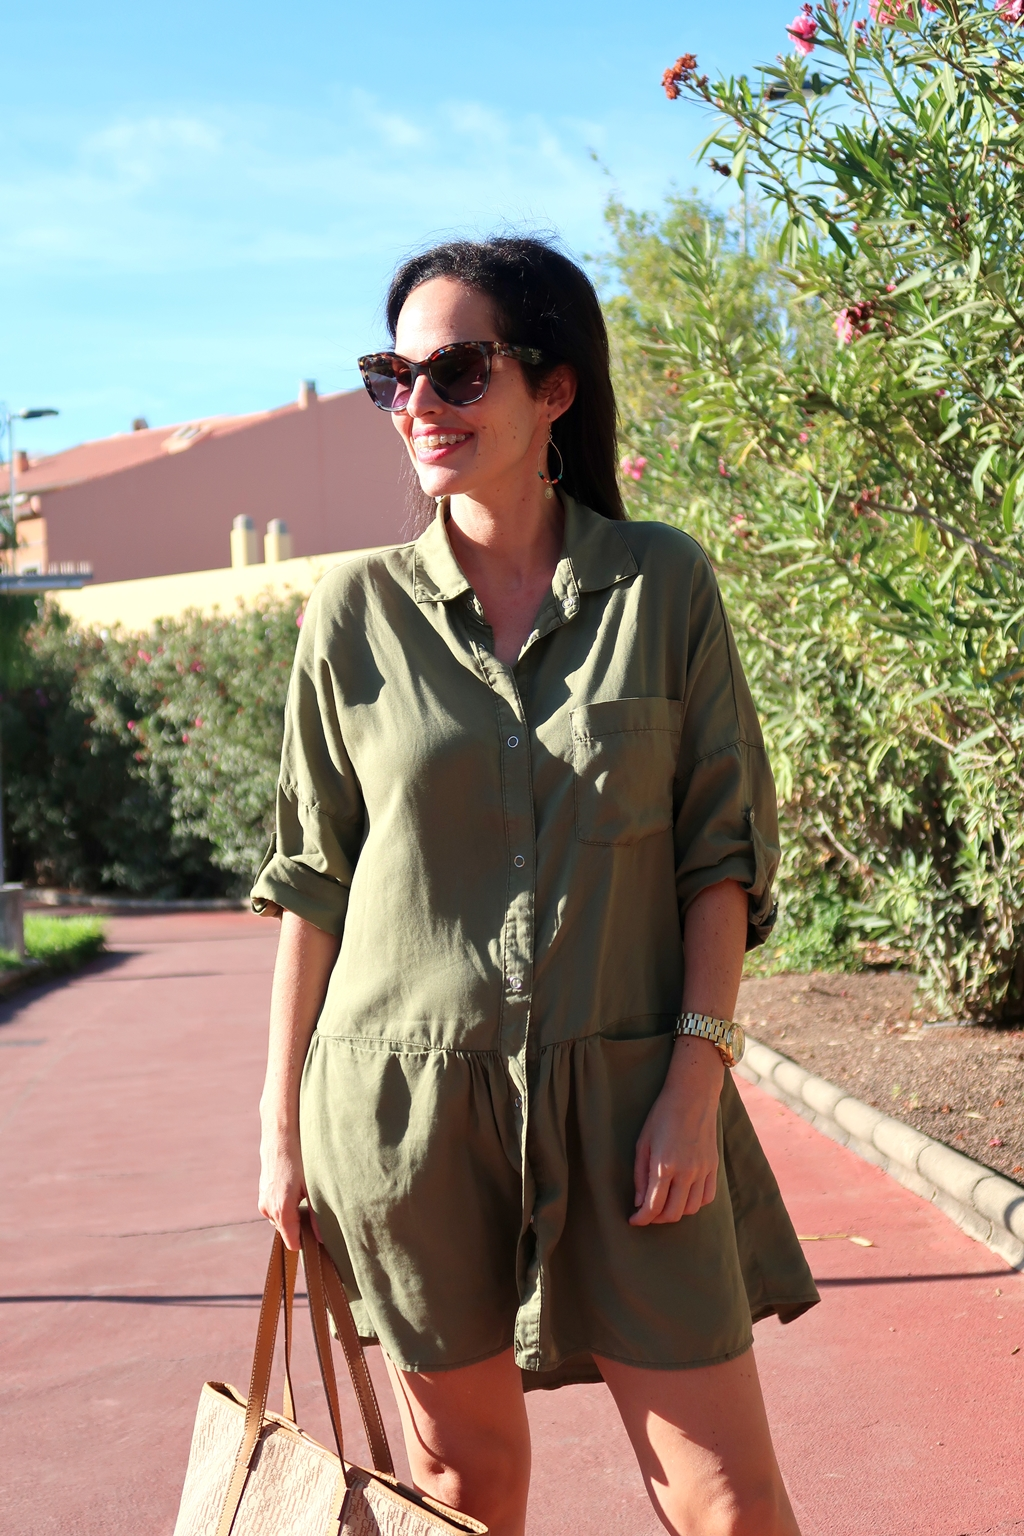 zara-khaki-dress-outfit-streetstyle